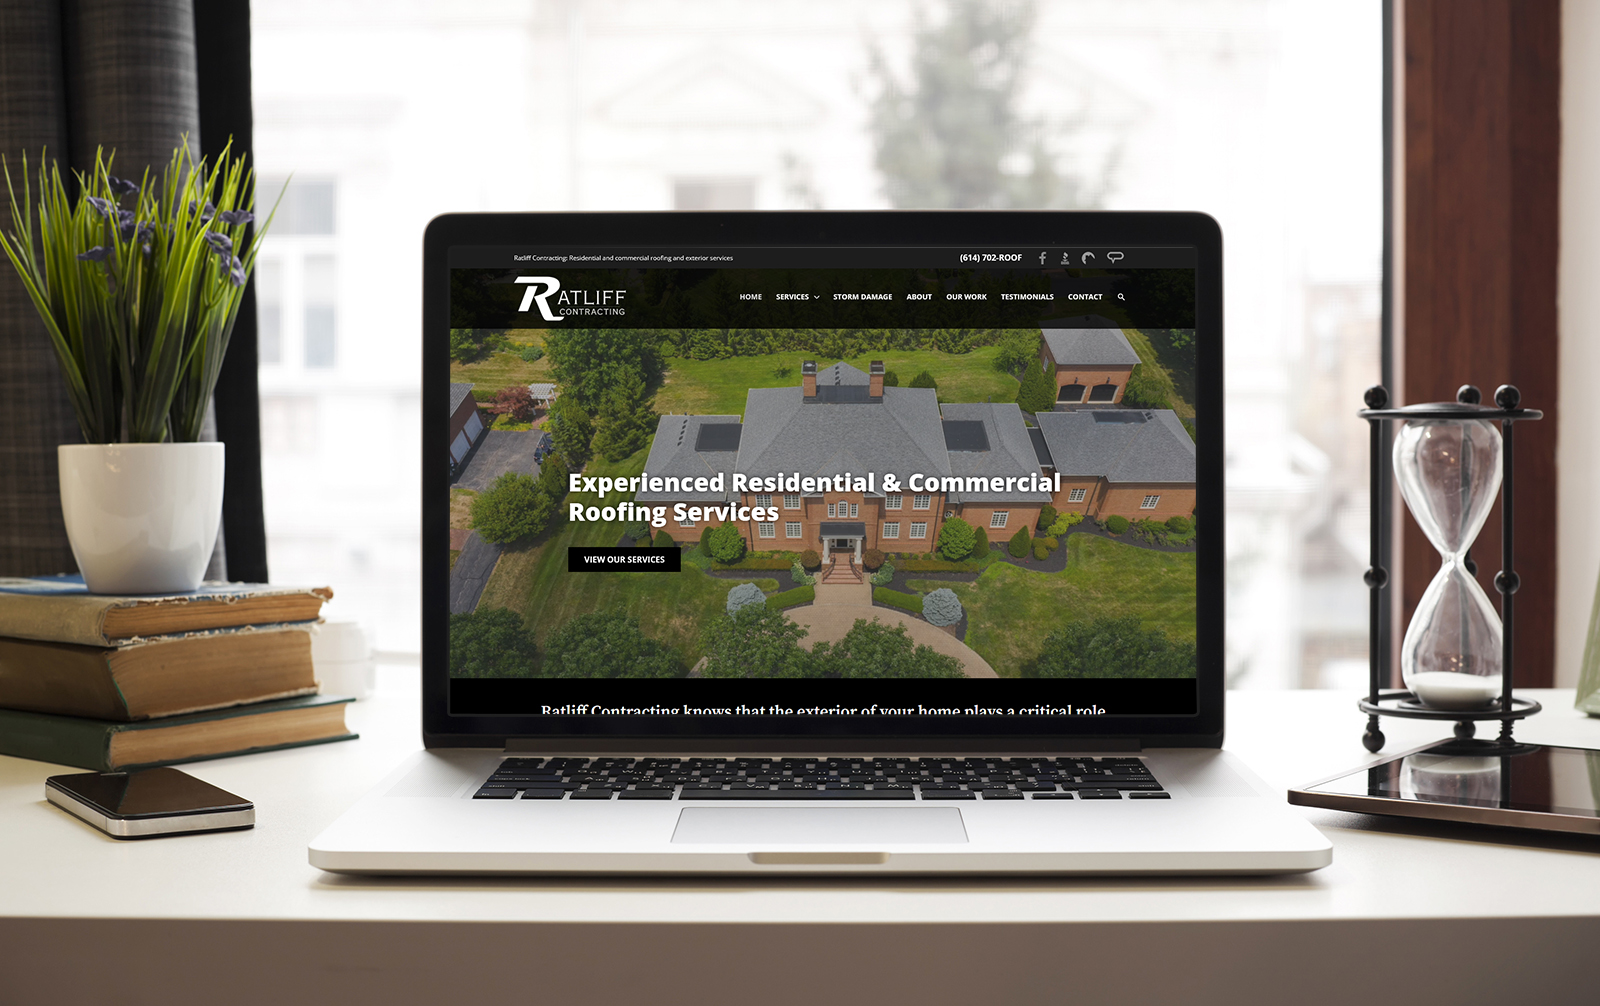 Website redesign by Robintek for Ratliff Contracting